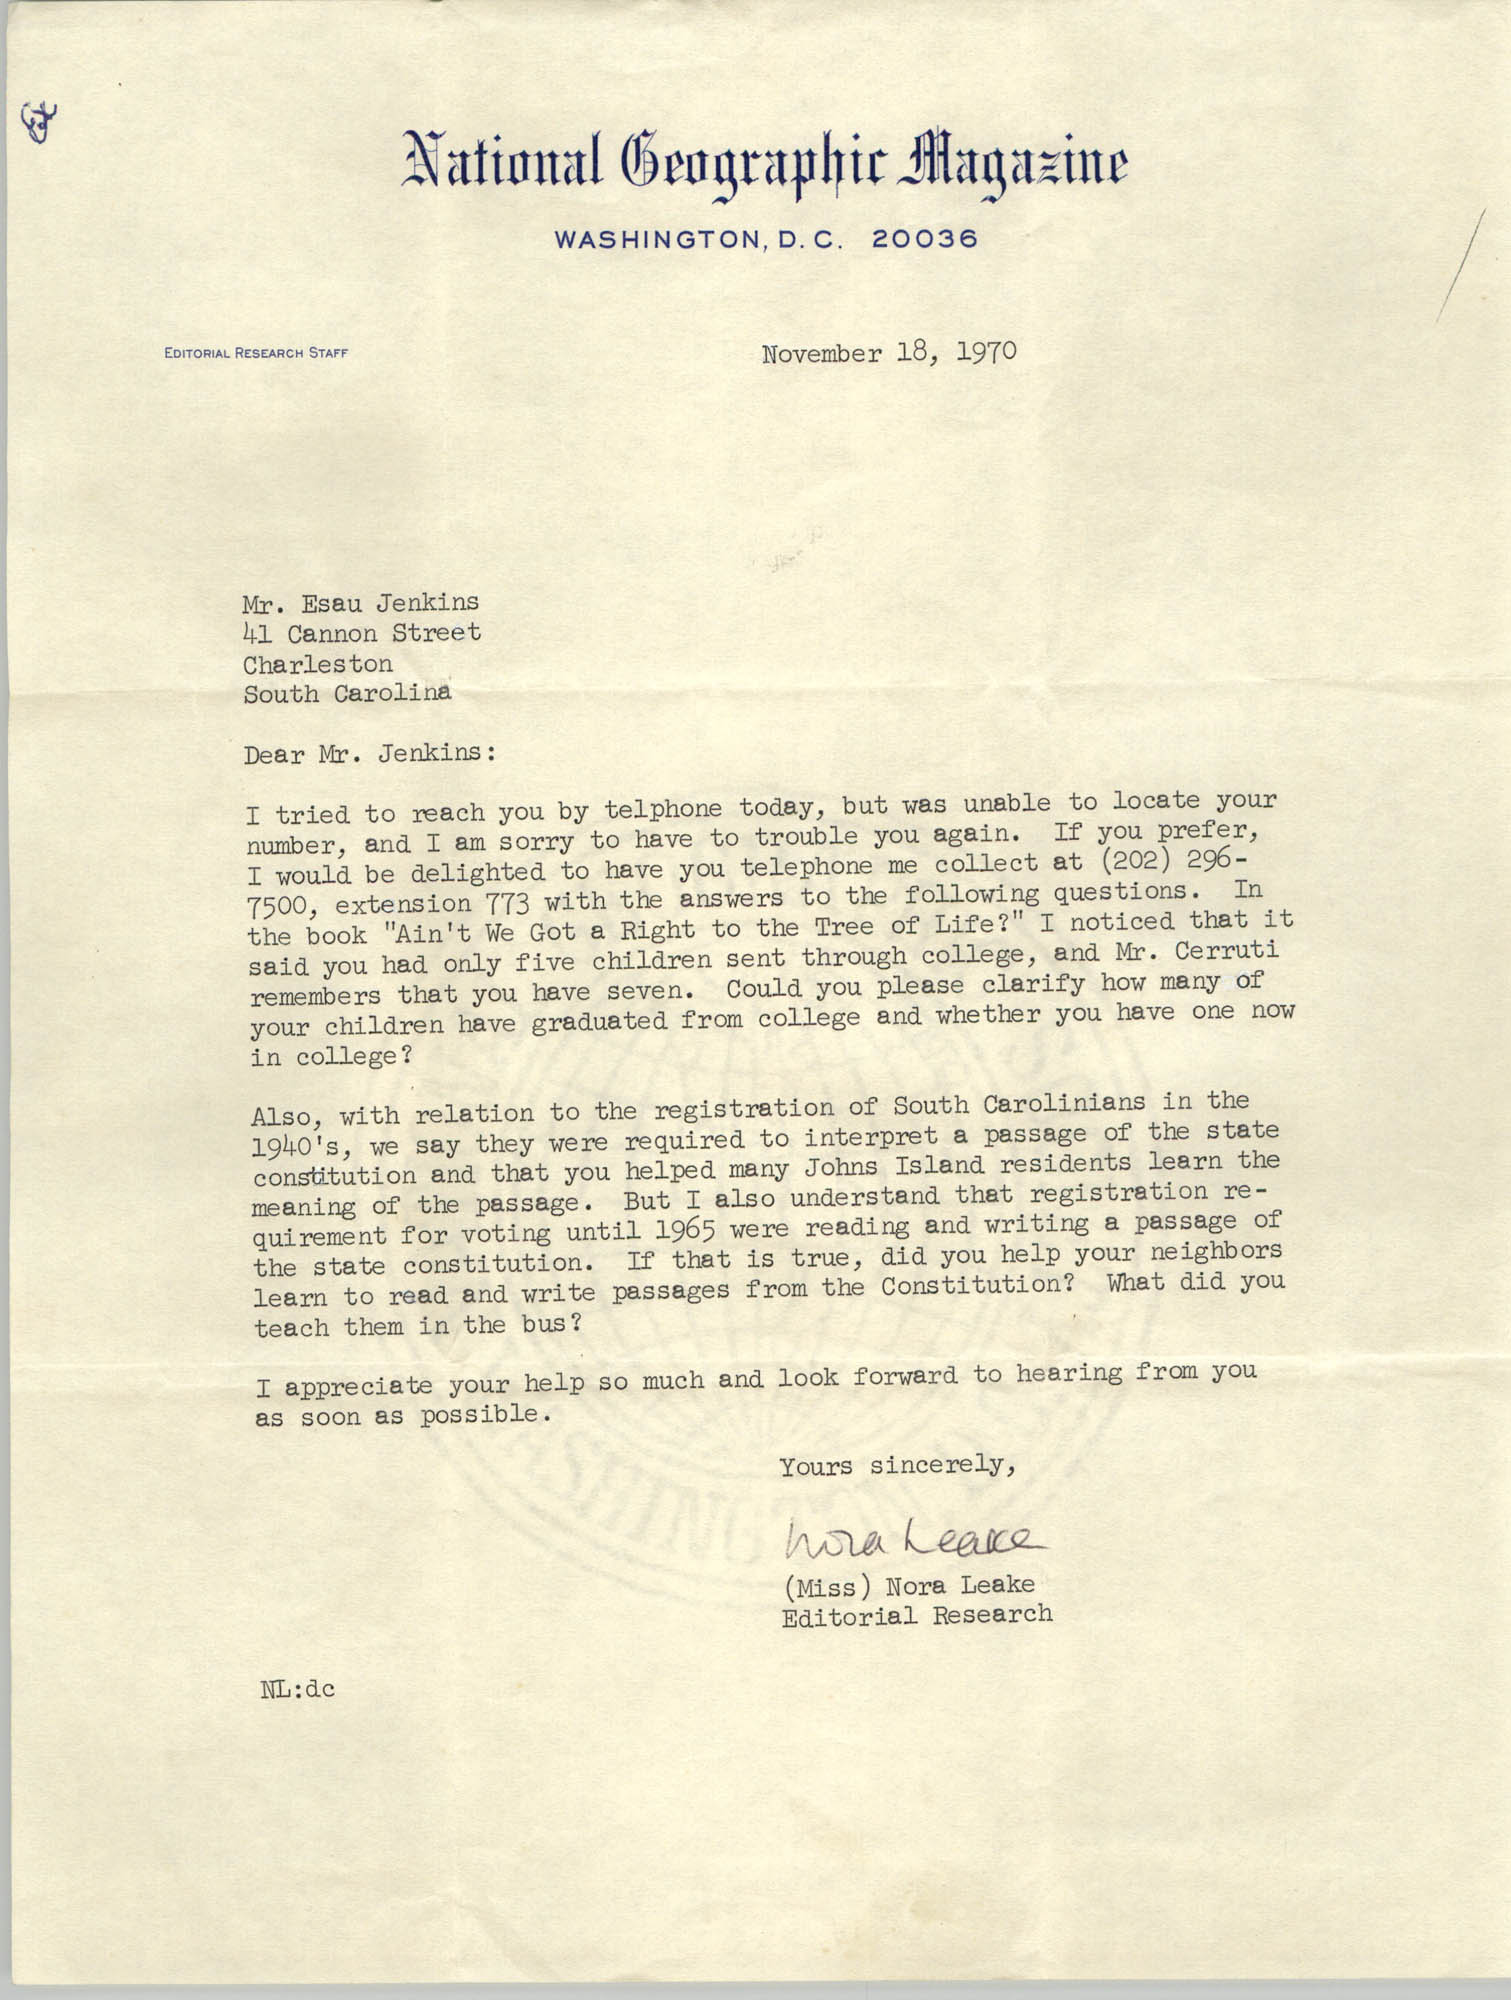 Letter from Nora Leake to Esau Jenkins, November 18, 1970